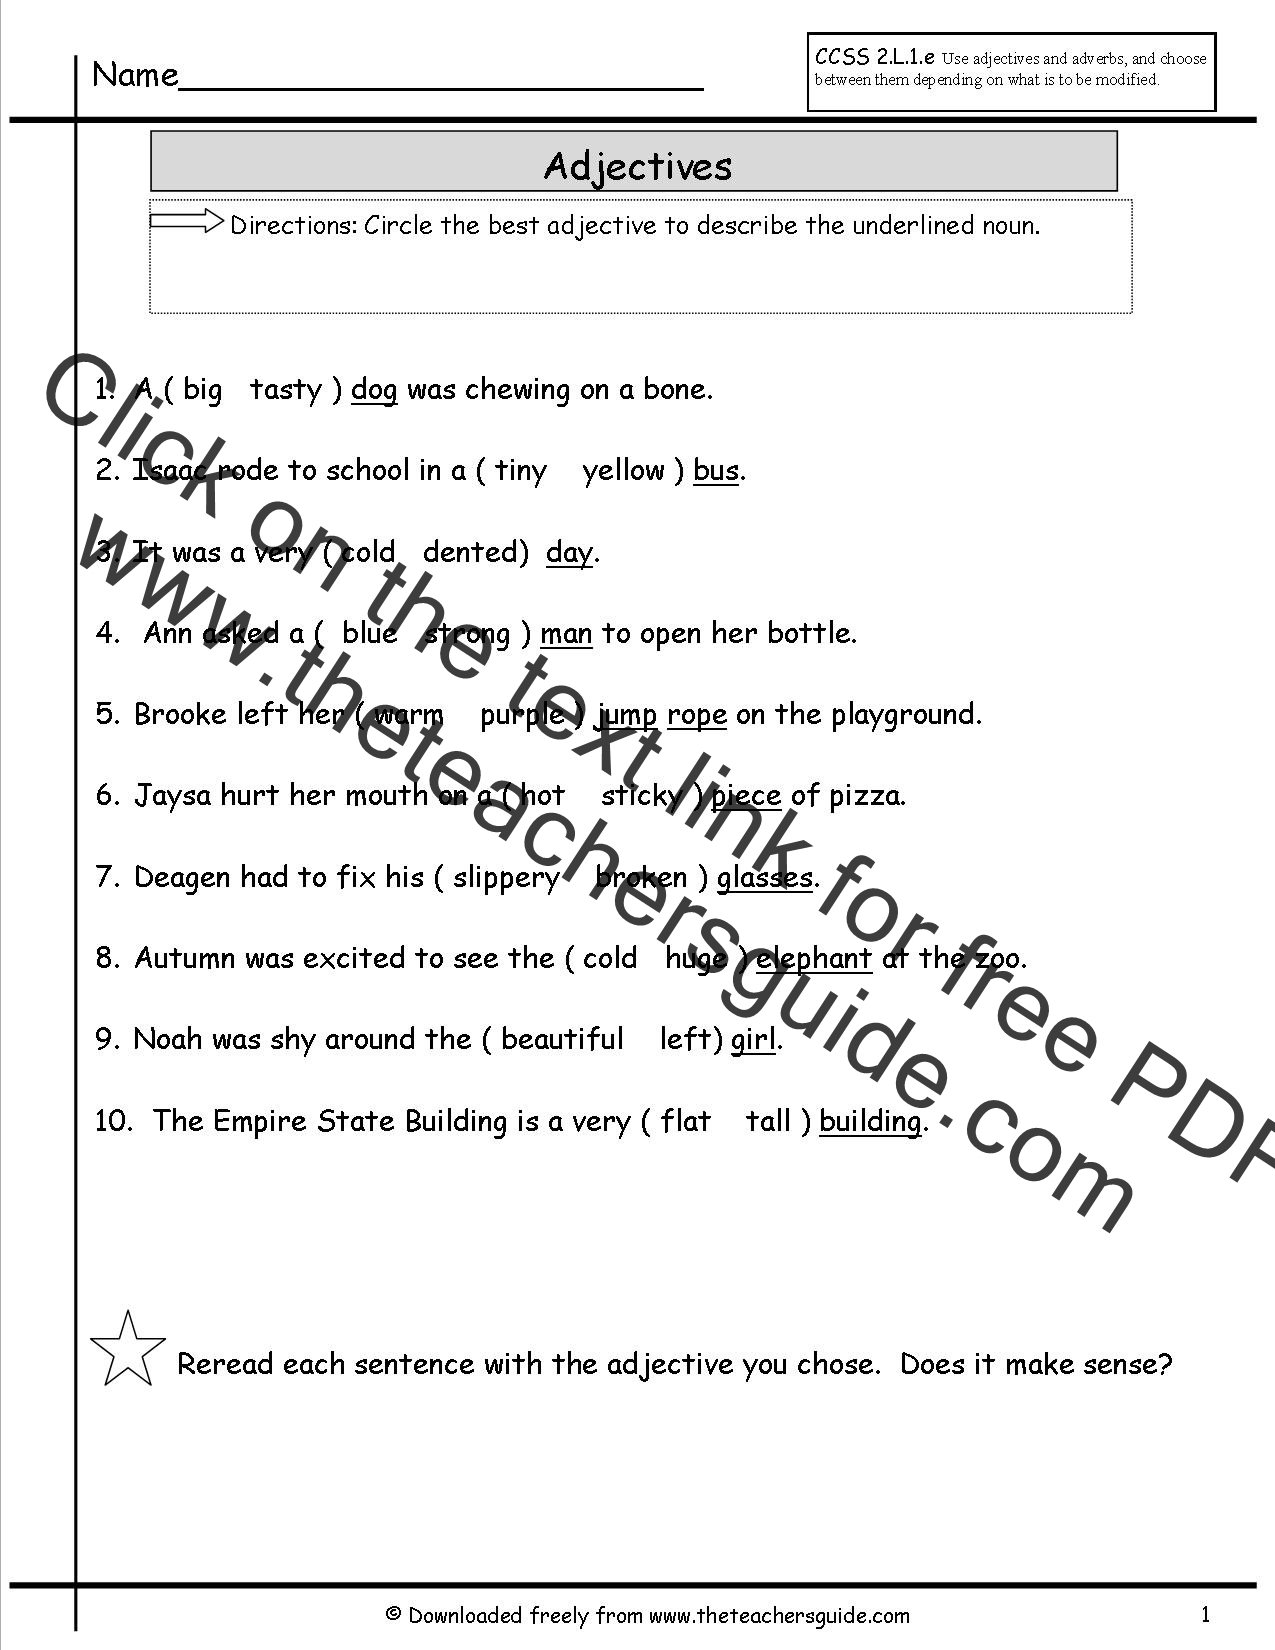 Free Grammar And Language Arts From The Teacher S Guide